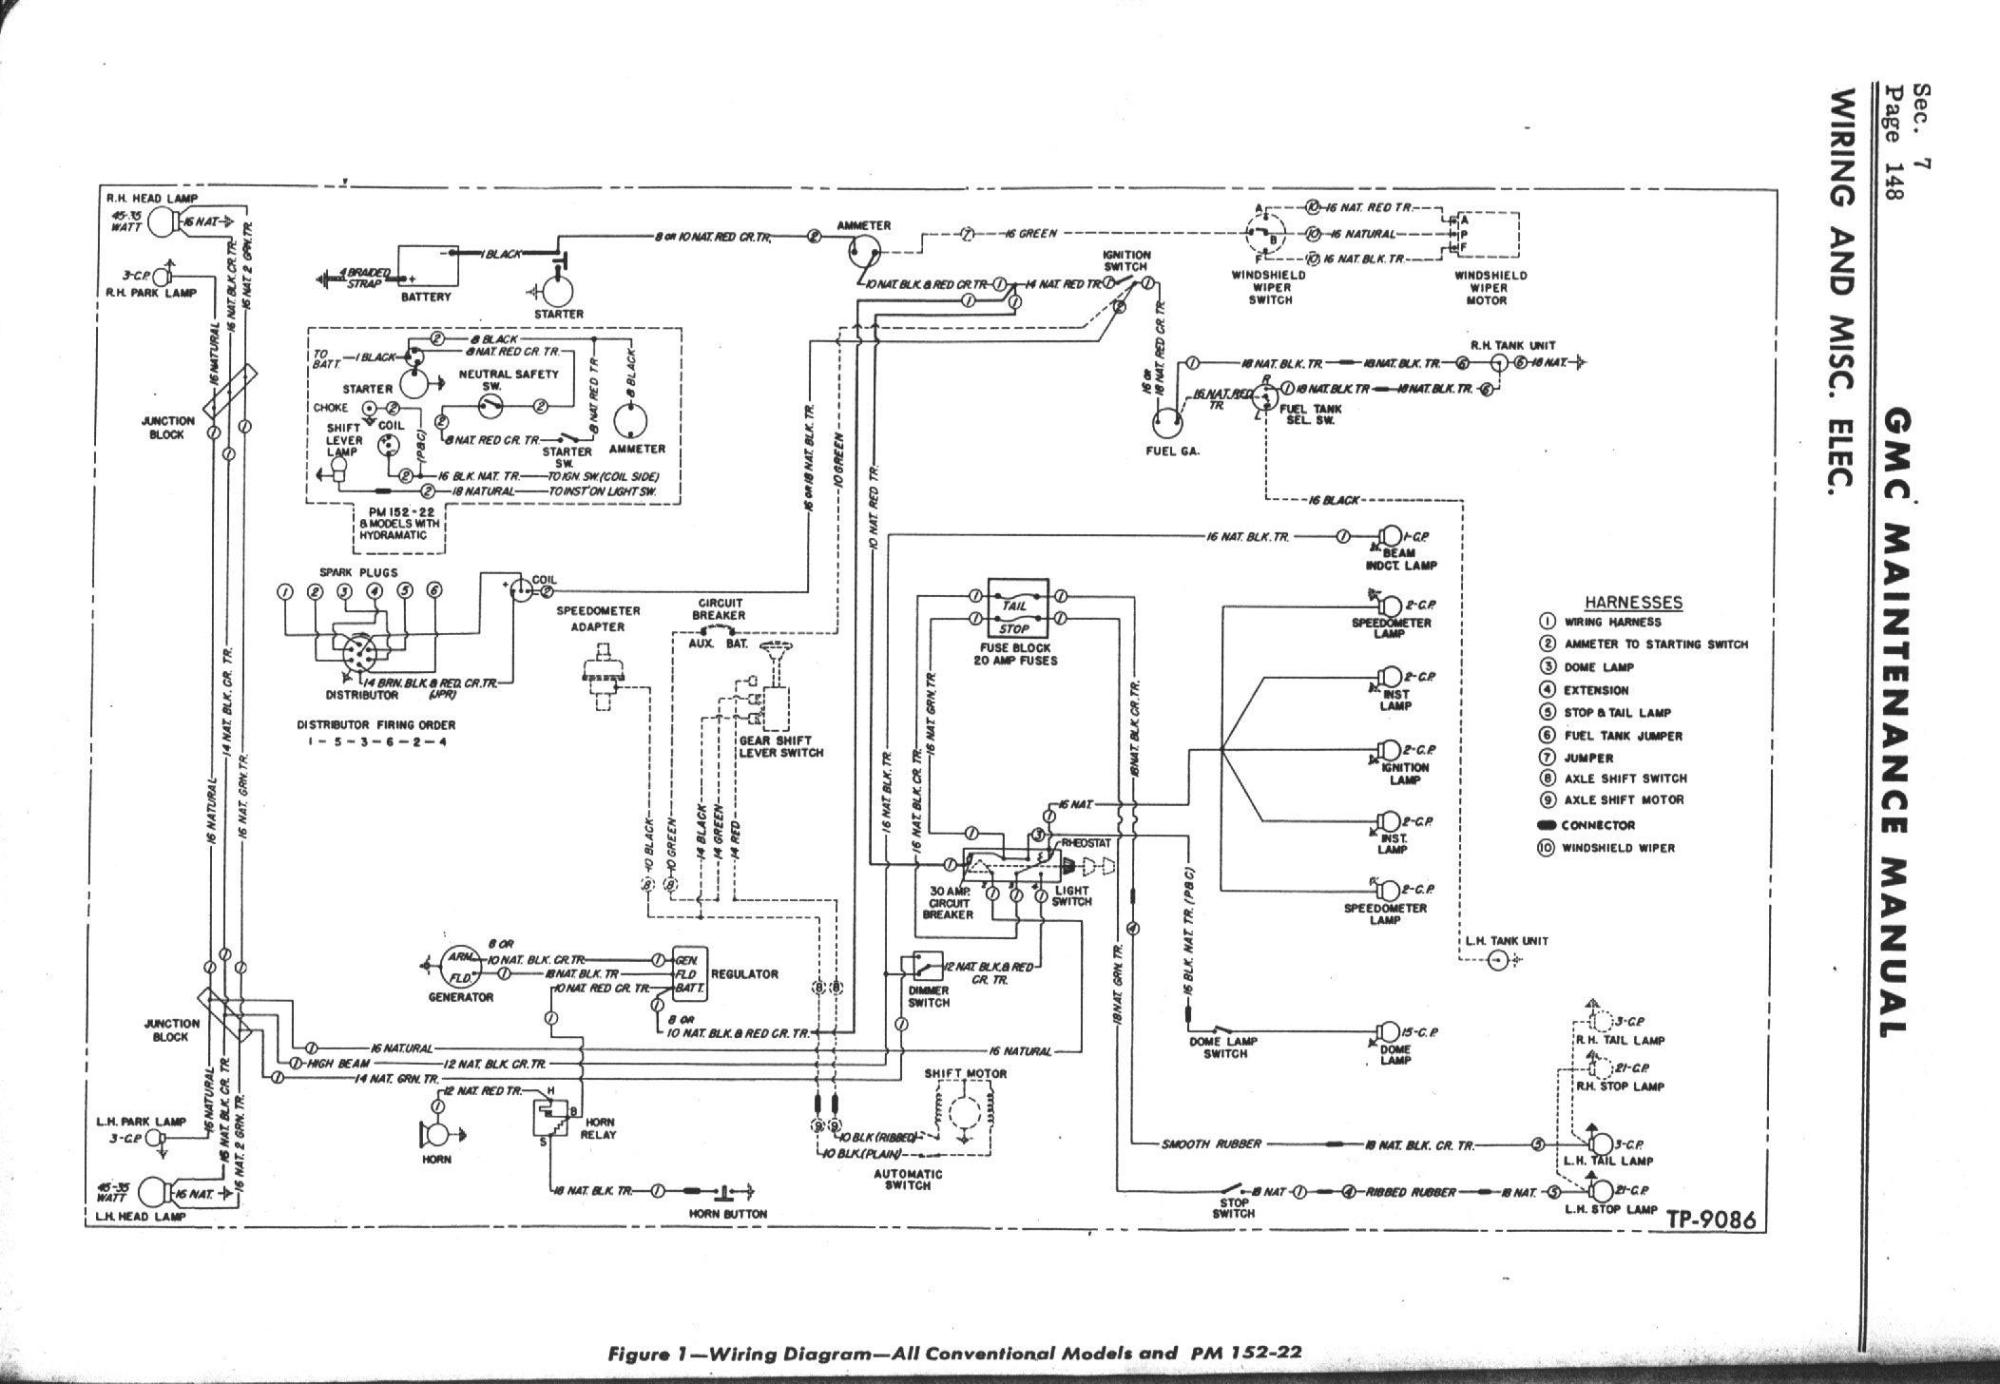 hight resolution of gmc truck wiring diagram gmc free engine image for user 1984 gmc truck wiring diagrams 1956